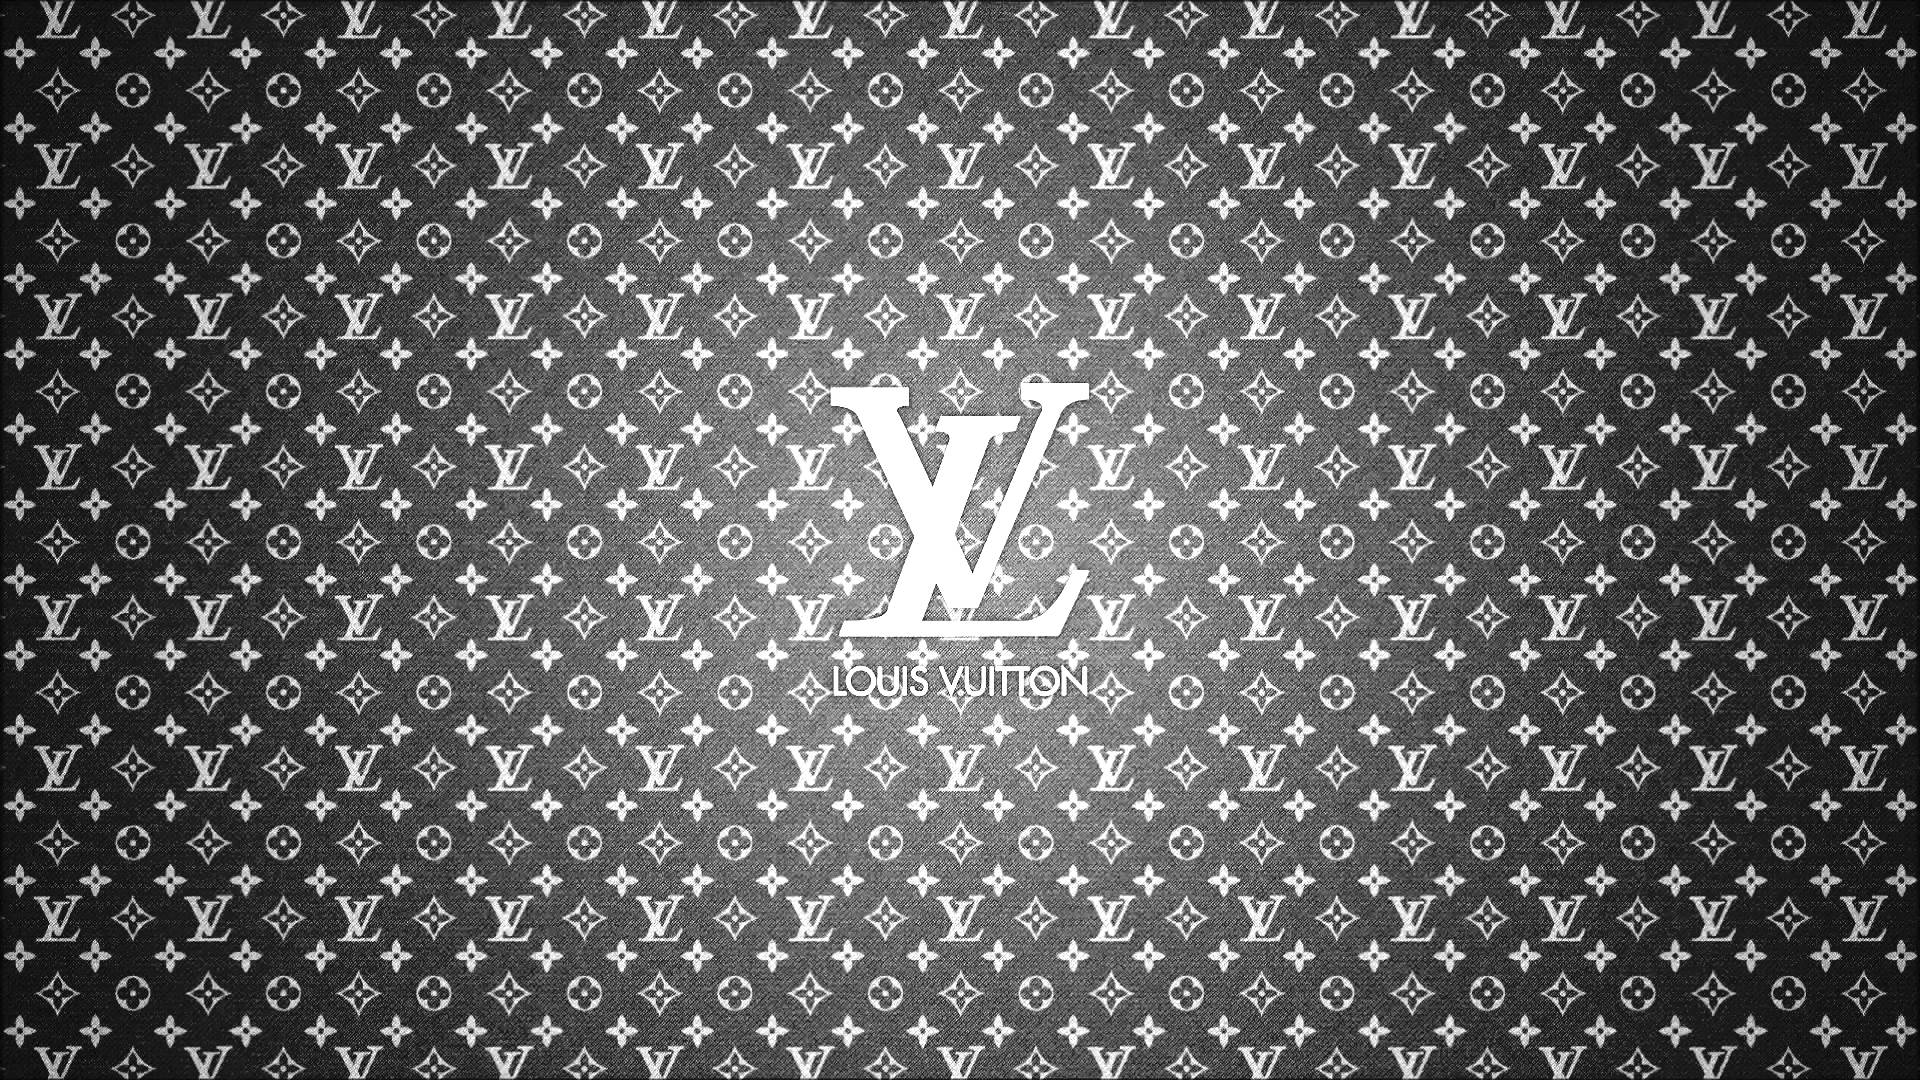 Best Louis Vuitton Retina Wallpapers For IPhone IPad Mobilecrazies 1920x1080